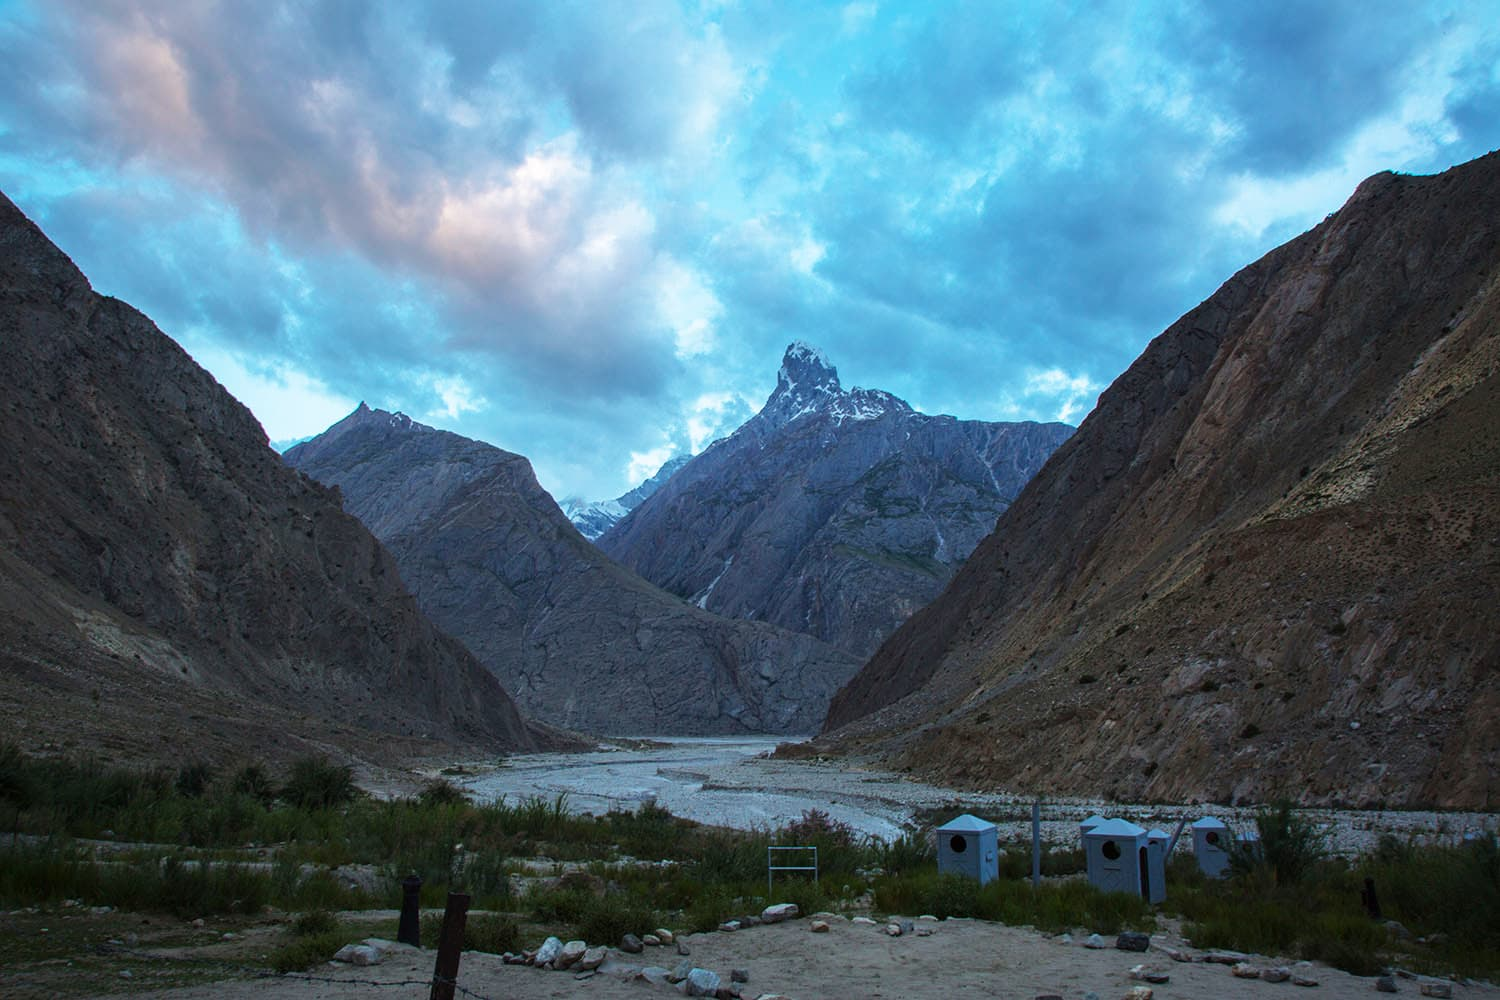 Night descending upon our Jhula campsite.